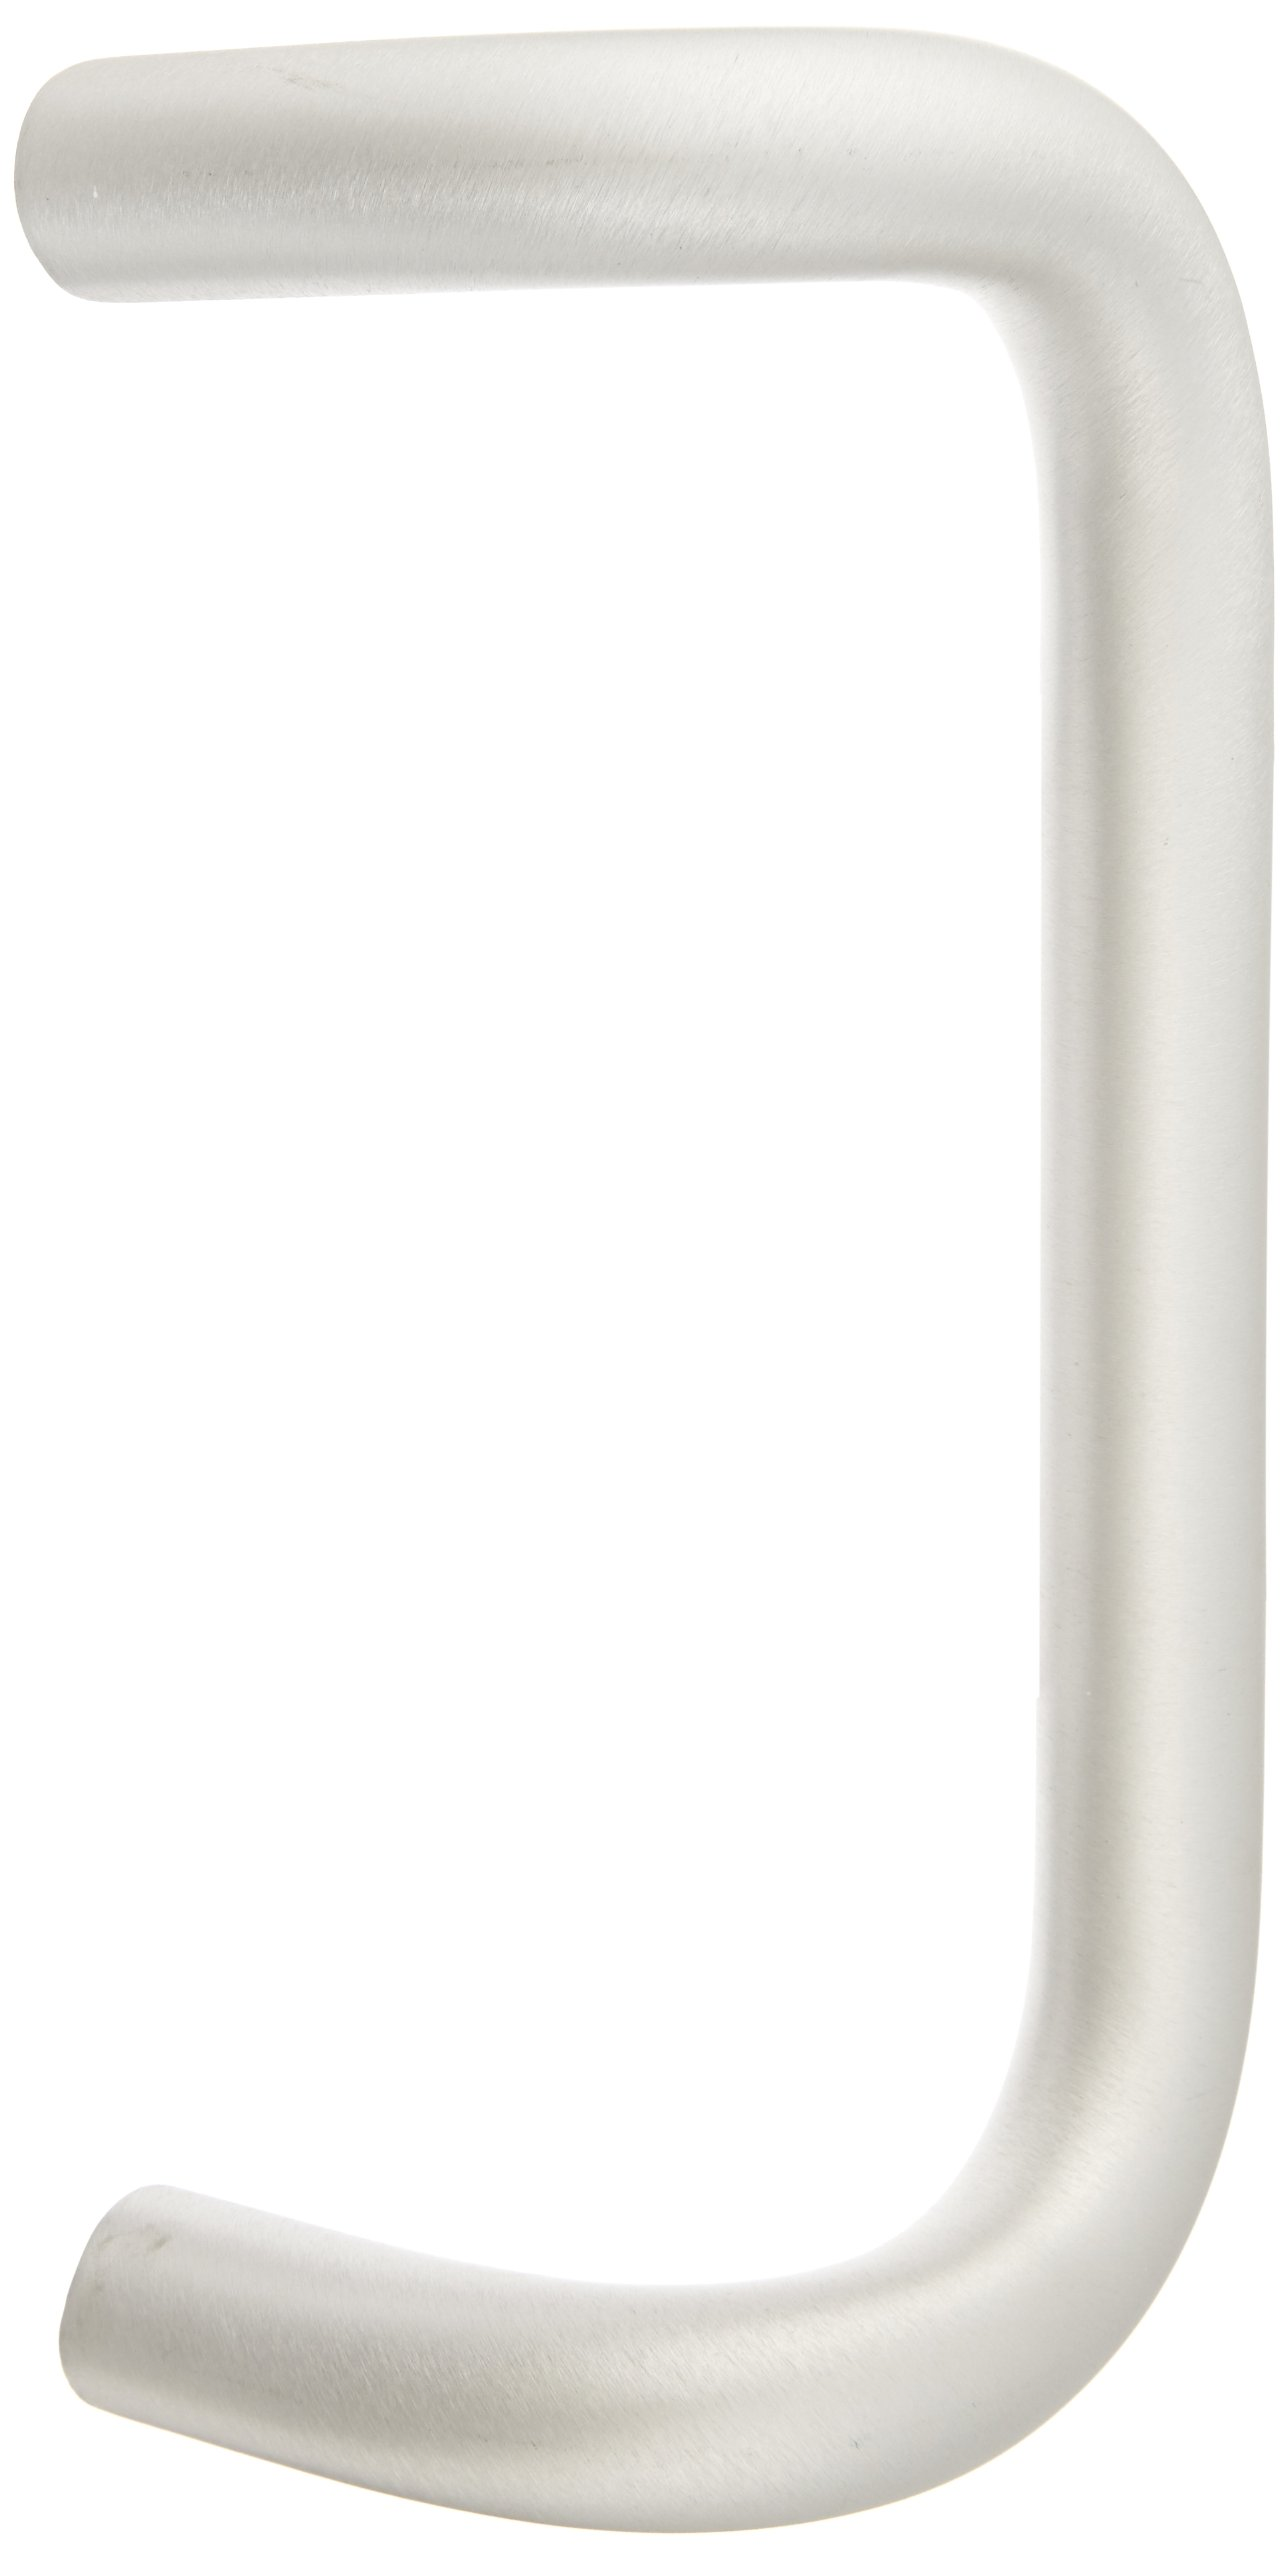 Rockwood BF157AC17.28 Aluminum 90-Degree Offset Door Pull, 1'' Diameter x 9'' Center-to-Center, Concealed Mounting for 1-3/4'' Door, Clear Anodized Finish